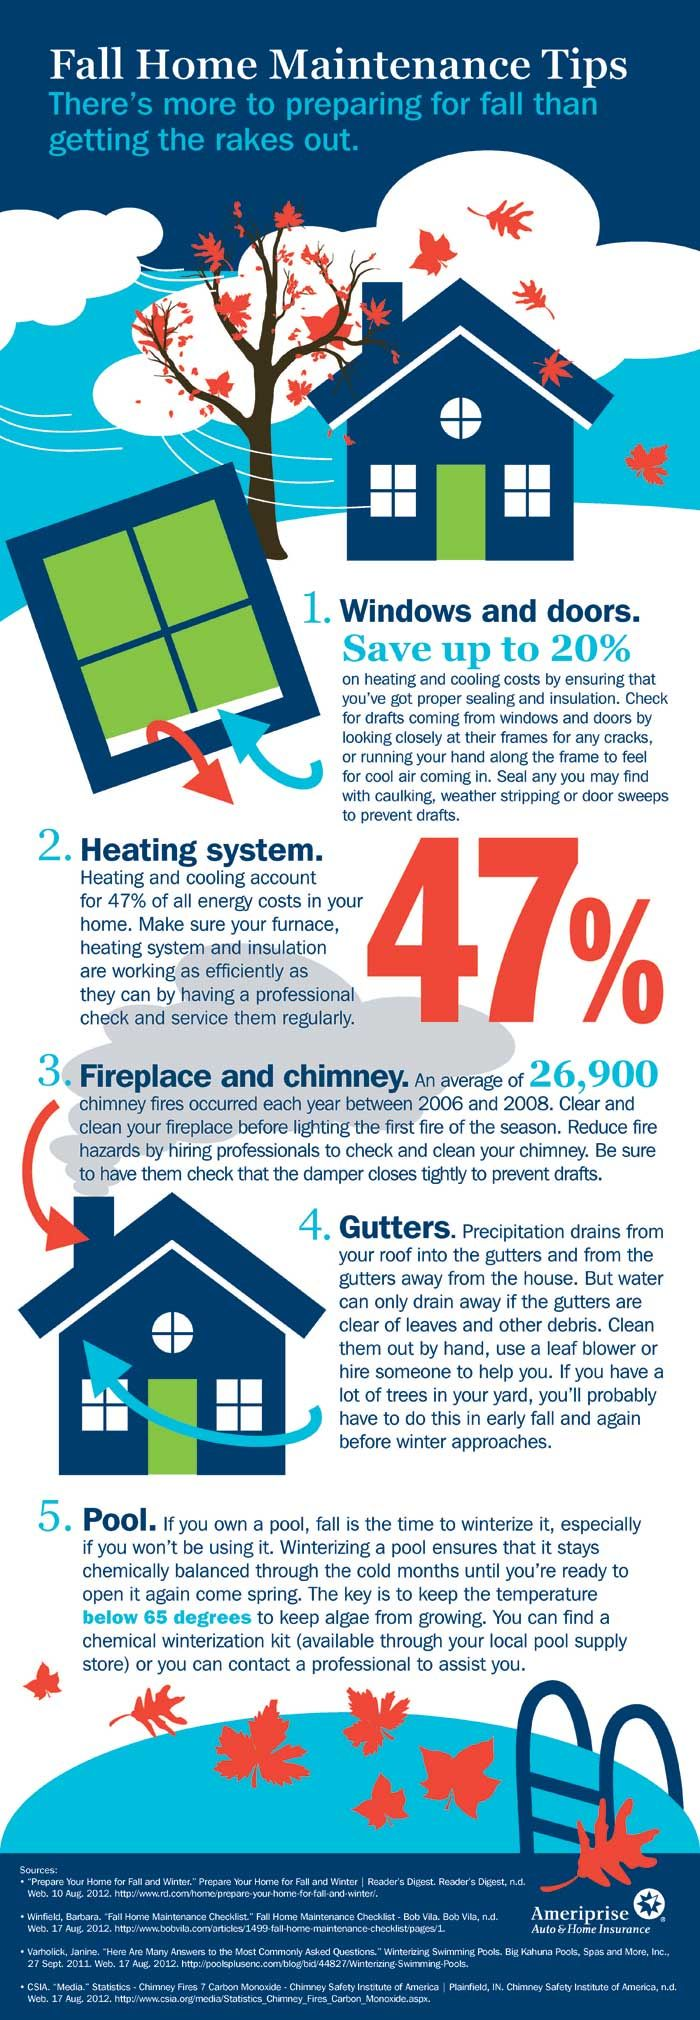 Fall home maintenance tips there's more to preparing for